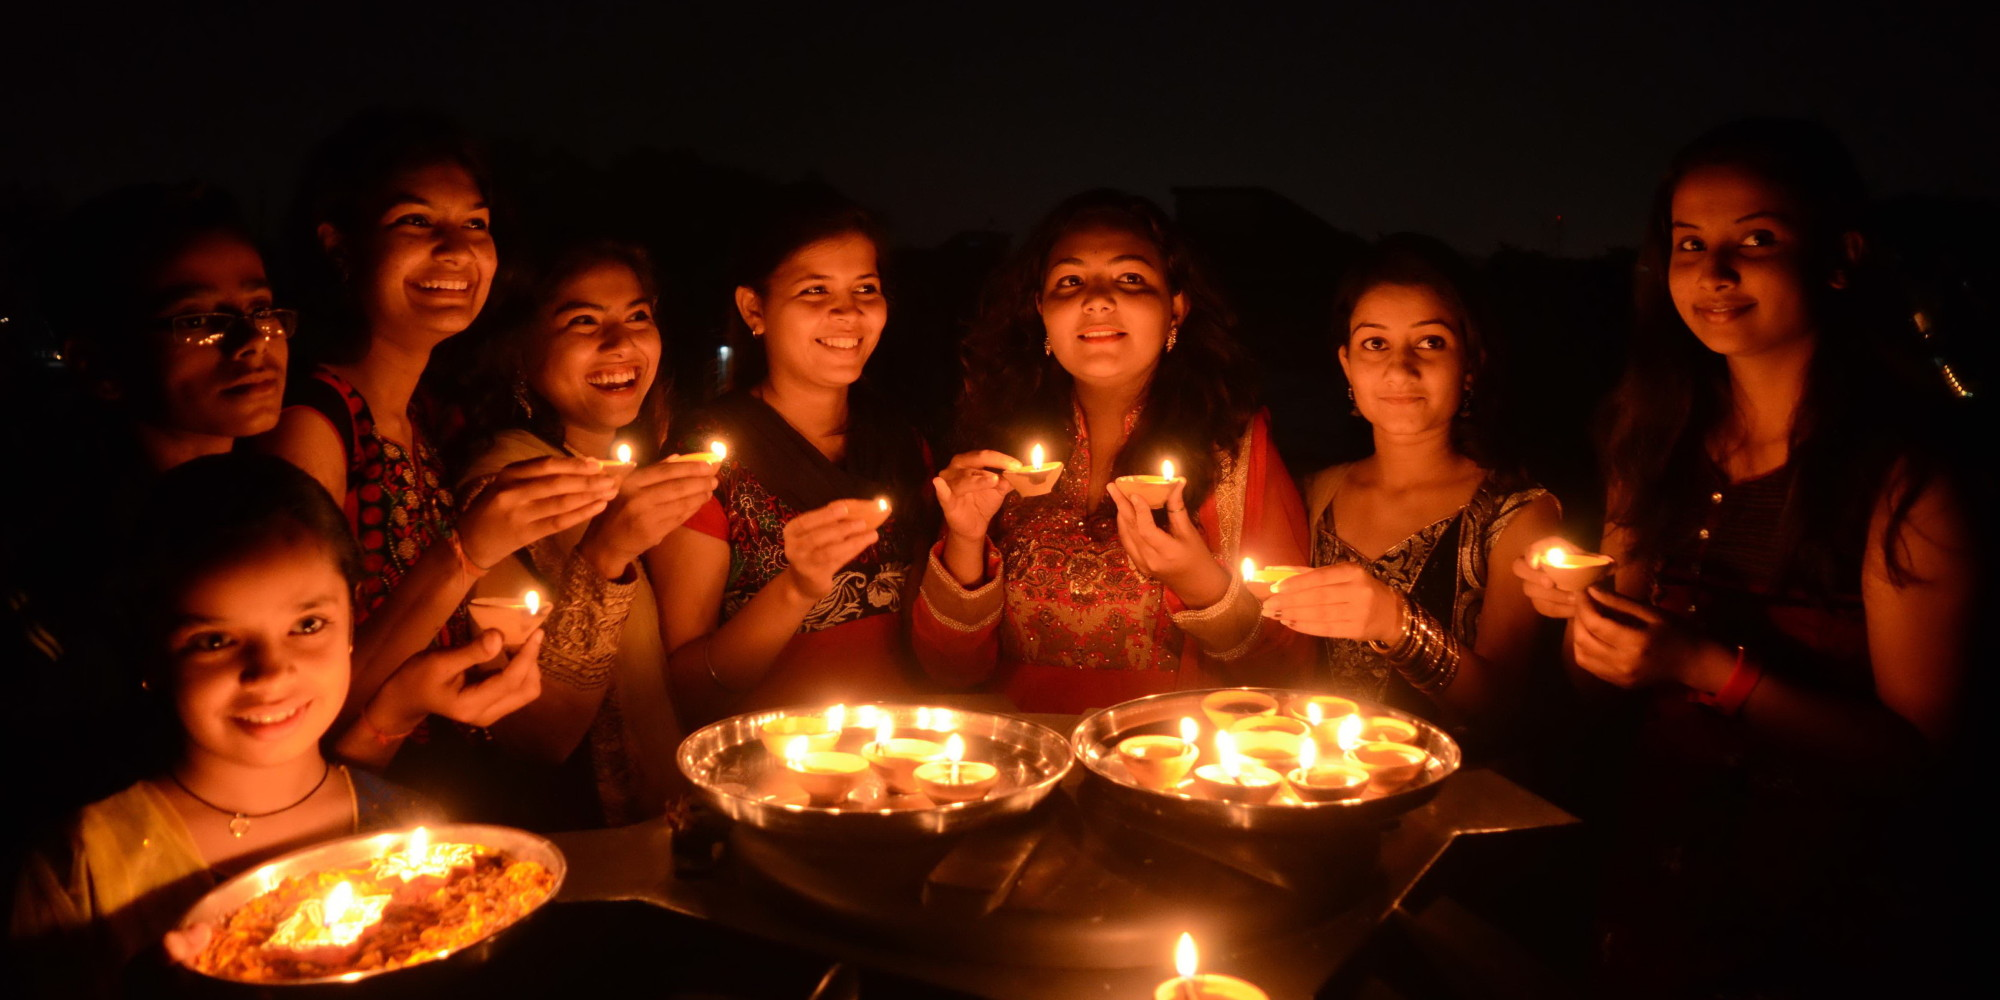 Diwali 2014, Celebrating The Festival Of Lights (PHOTOS) | HuffPost for Deepavali Festival Celebration  555kxo